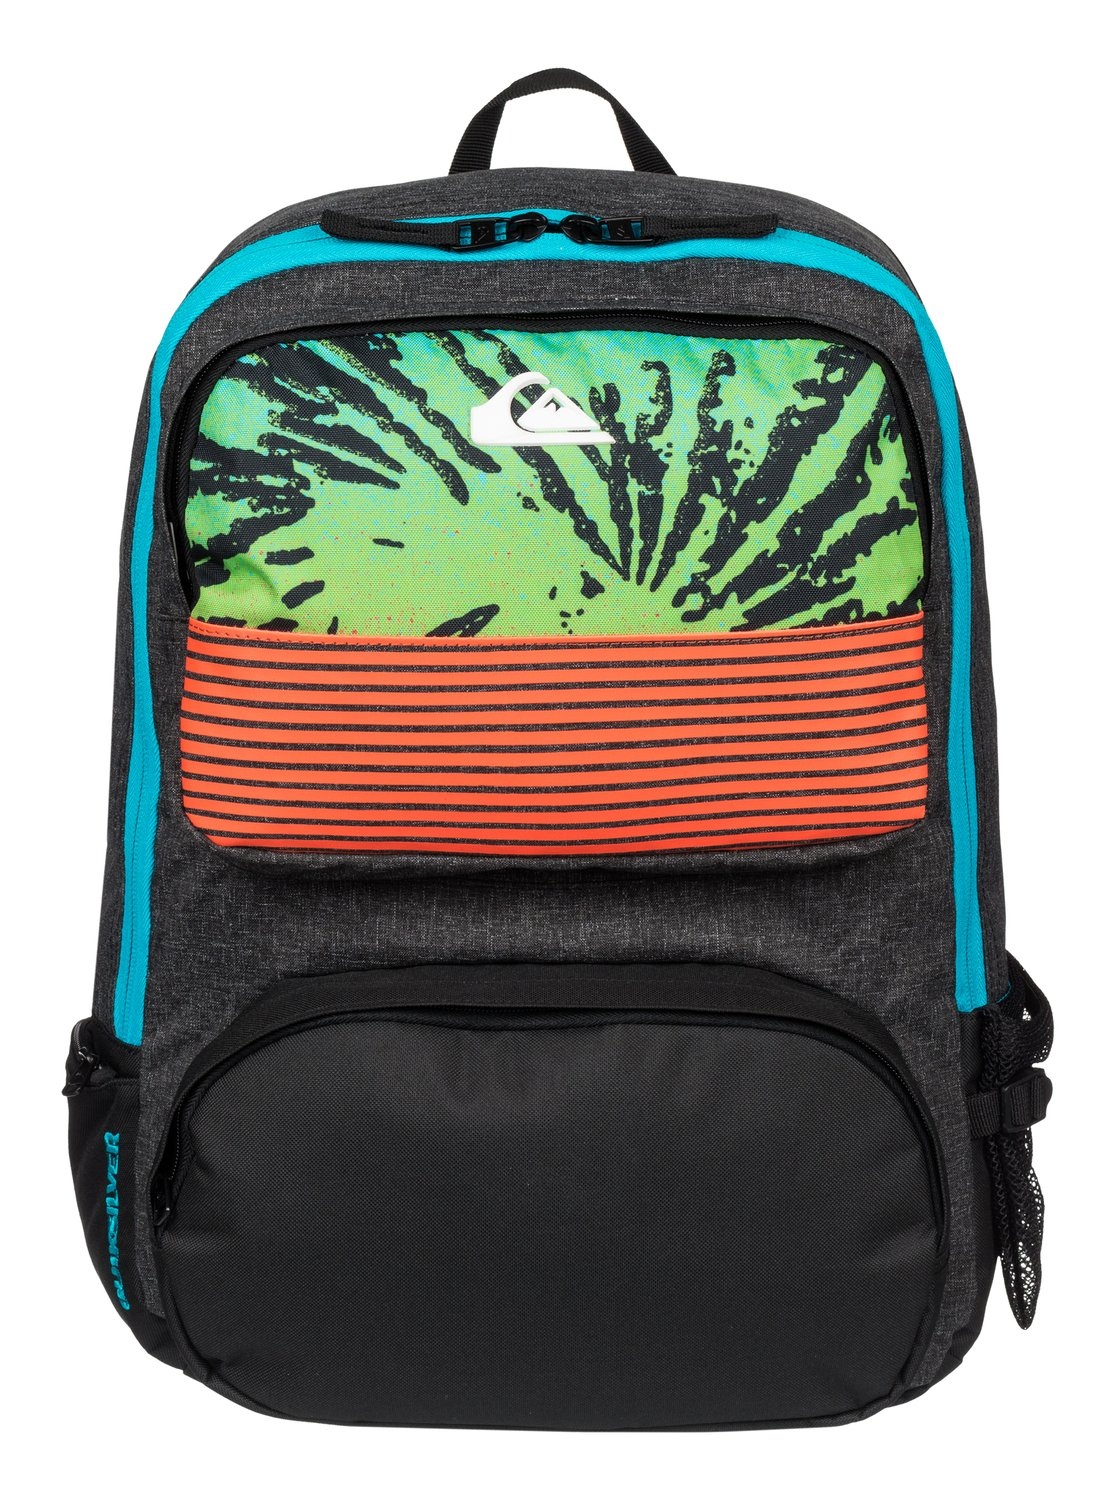 Quiksilver Sac à dos Wedge yGHu8